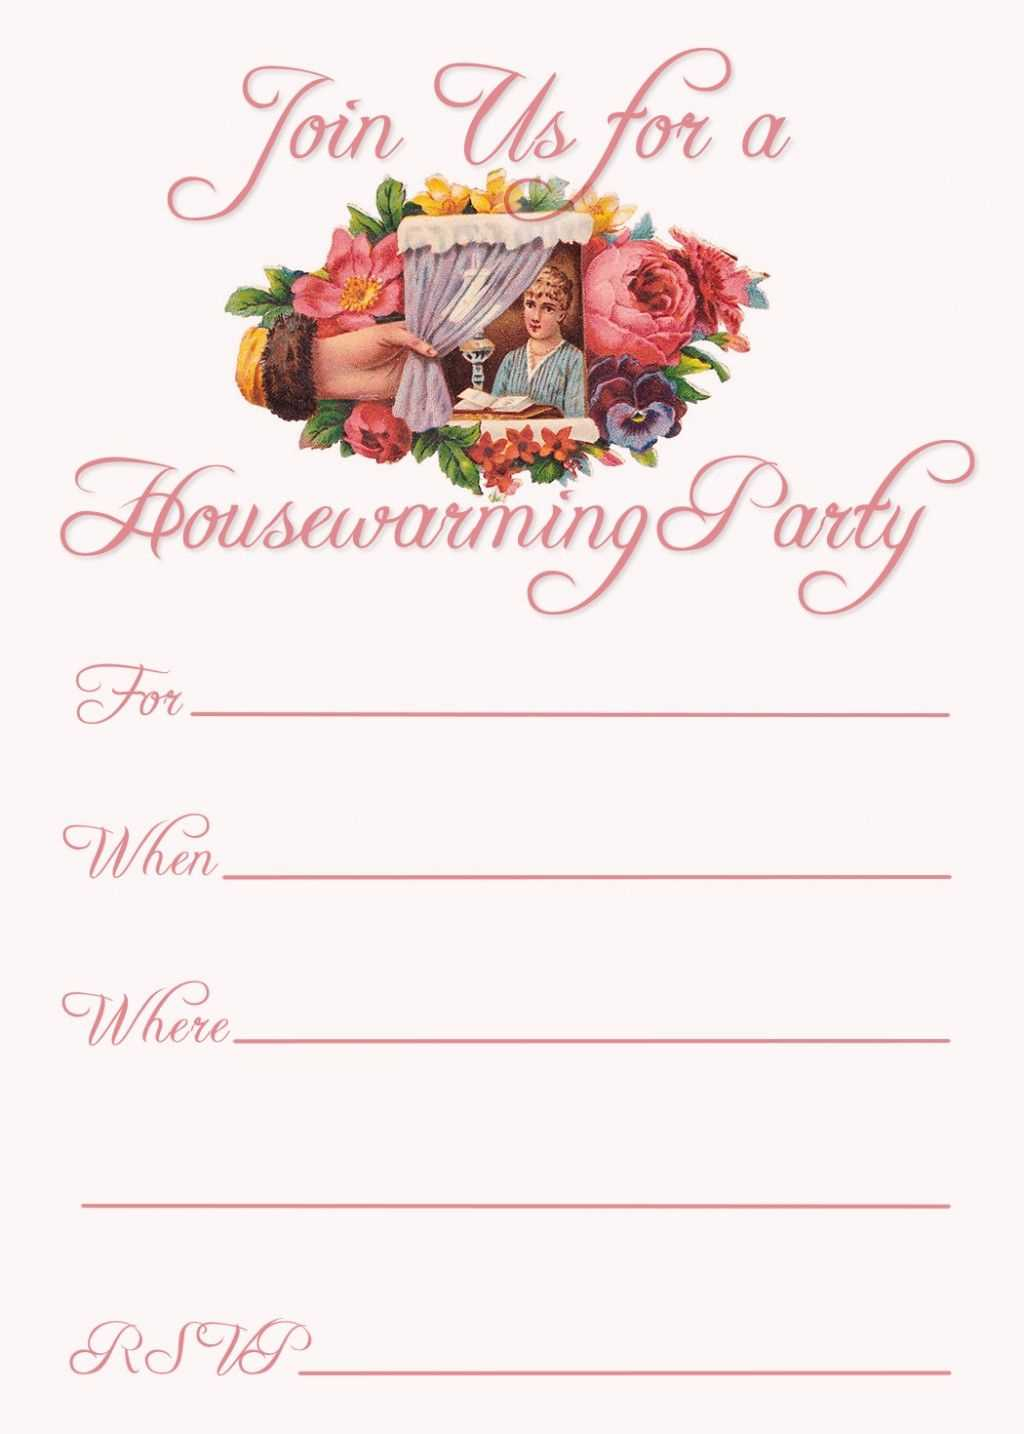 001 Housewarming Party Invitations Templates Template Ideas With Free Housewarming Invitation Card Template